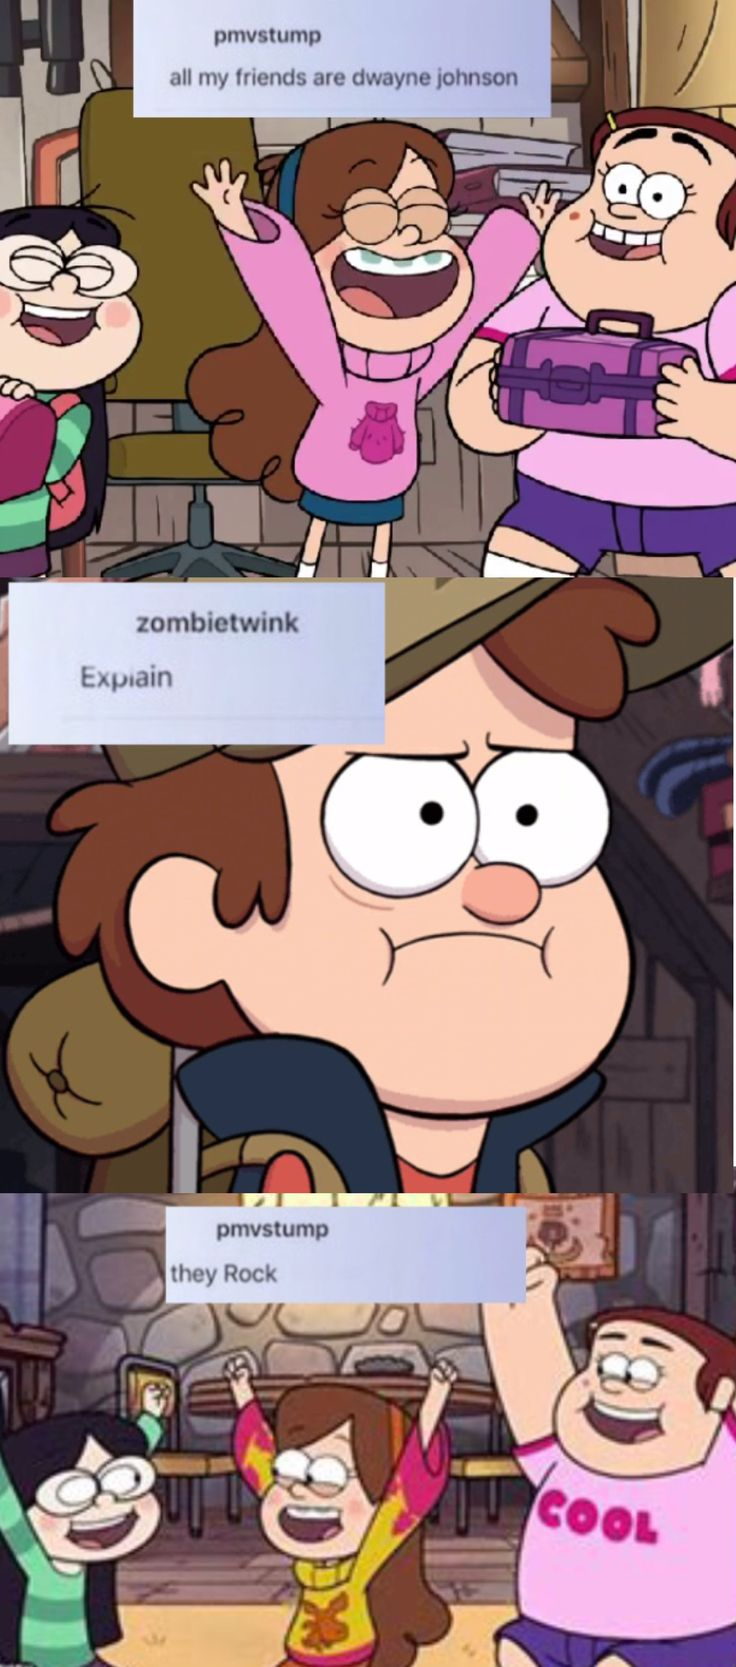 Gravity falls texpost , I made it with IbisPaint X and Pic Collage. Gravity falls textposts , Mabel pines text posts ,